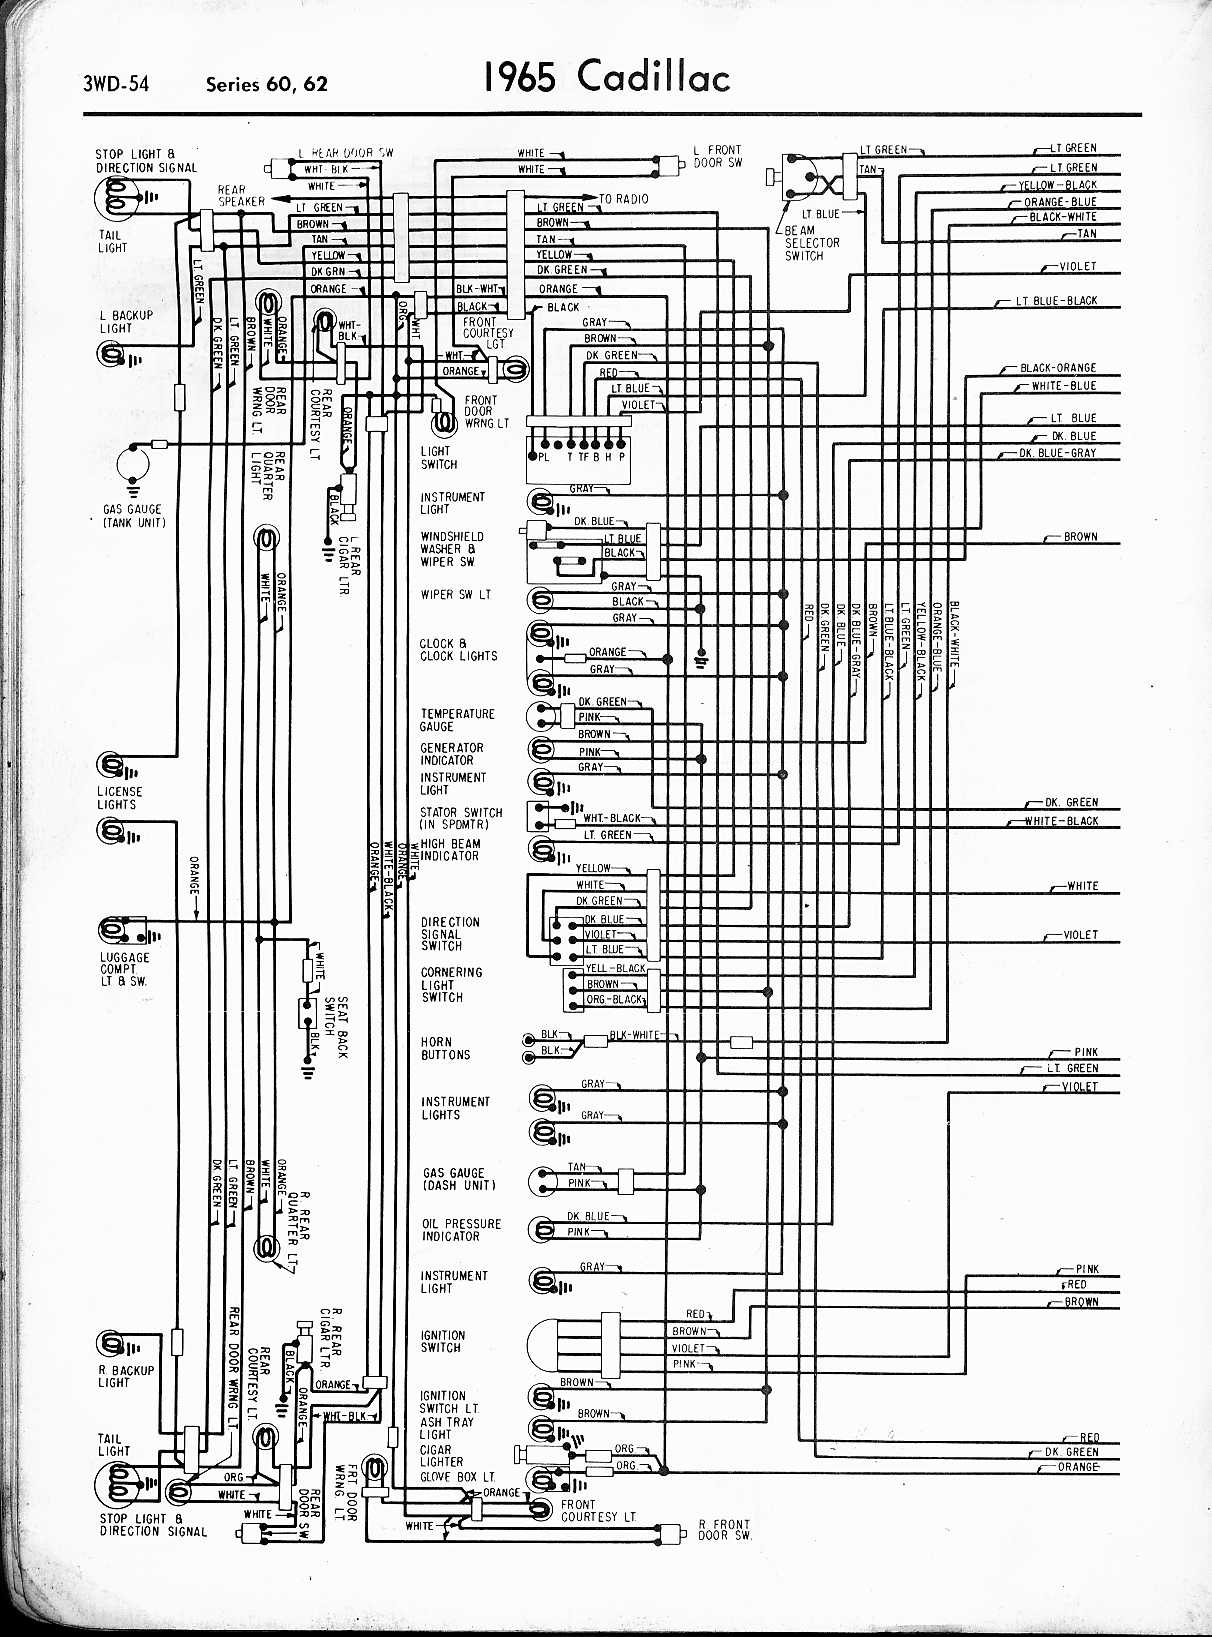 Cadillac Wiring Diagrams: 1957-1965 on 2004 cadillac deville console, 2004 cadillac deville glove box, 2004 cadillac deville intake manifold, 2004 cadillac deville oil pan, 2004 cadillac deville radiator support, 2004 cadillac deville grille, 2004 cadillac deville headlights, 2004 cadillac deville roof rack, 2004 cadillac deville gas tank size, 2004 cadillac deville blower motor resistor, 2004 cadillac deville air intake tube, 2004 cadillac deville spark plugs, 2004 cadillac deville egr valve, 2004 cadillac deville belt diagram, 2004 cadillac deville dash assembly, 2004 cadillac deville torque converter, 2004 cadillac deville rear suspension, 2004 cadillac deville side view mirror, 2004 cadillac deville coolant level sensor, 2004 cadillac deville water pump belt,